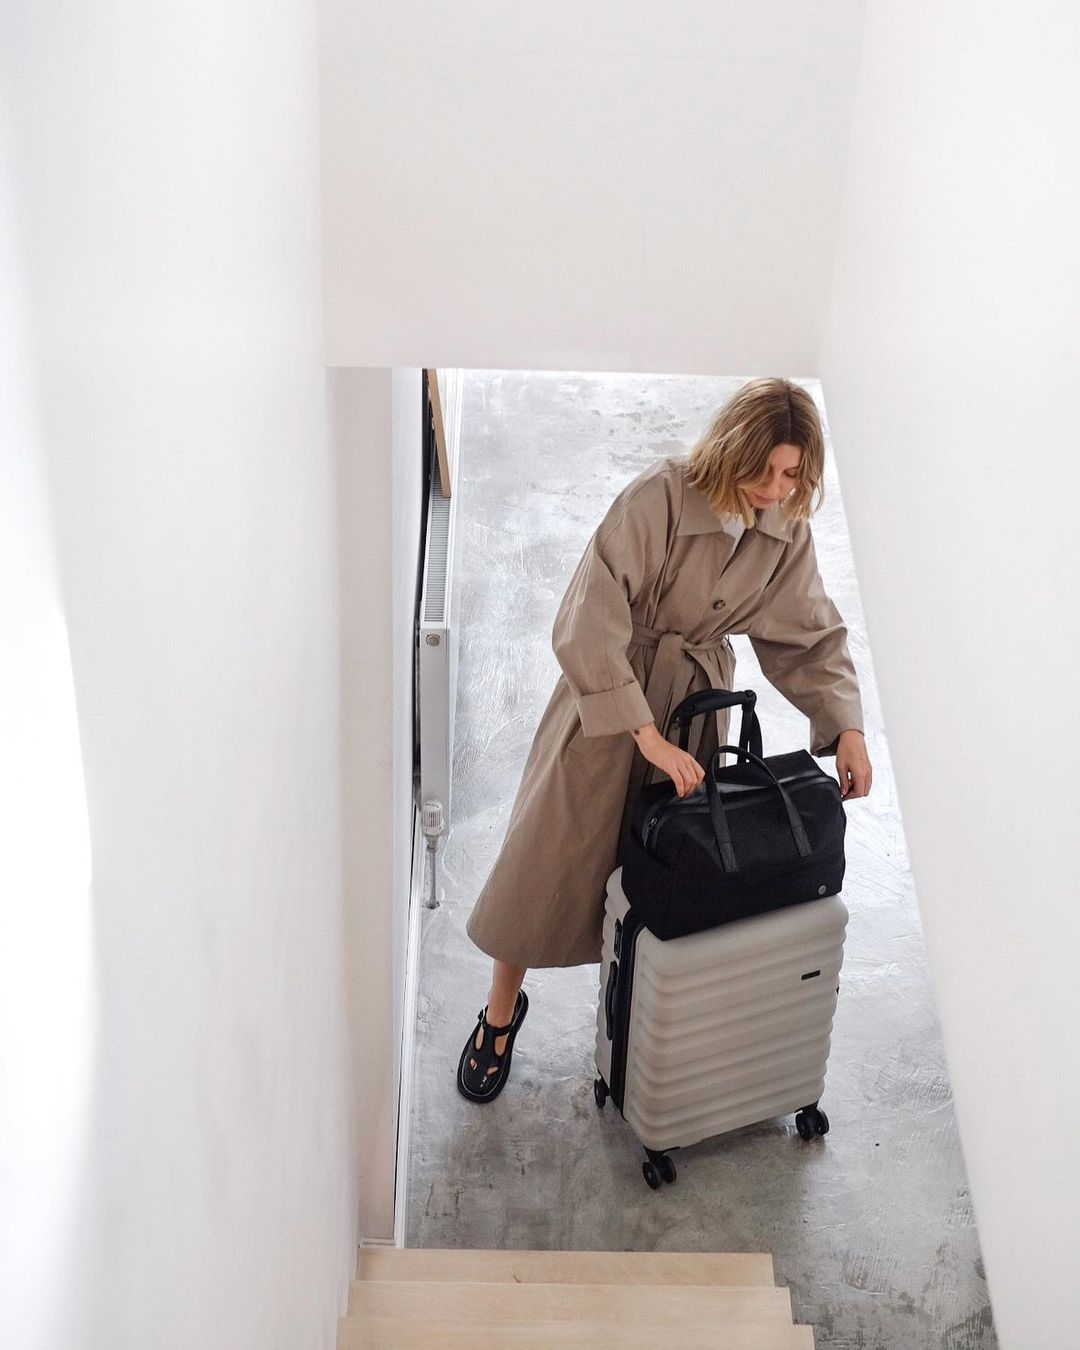 Brittany Bathgate with Antler Clifton suitcase in taupe